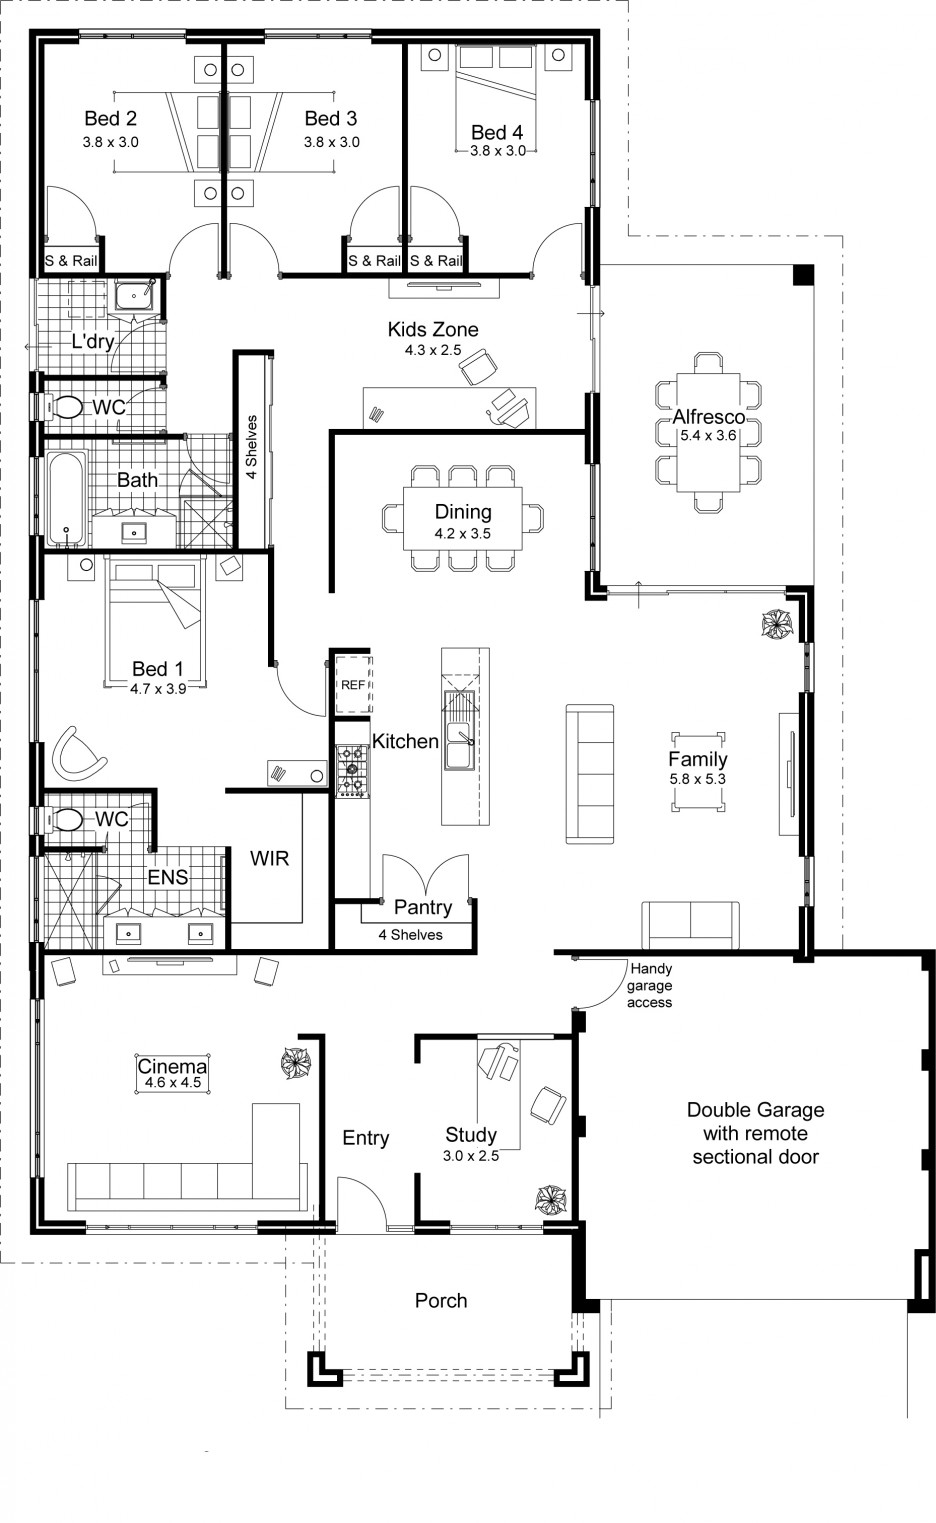 403 forbidden Modern floor plan designs